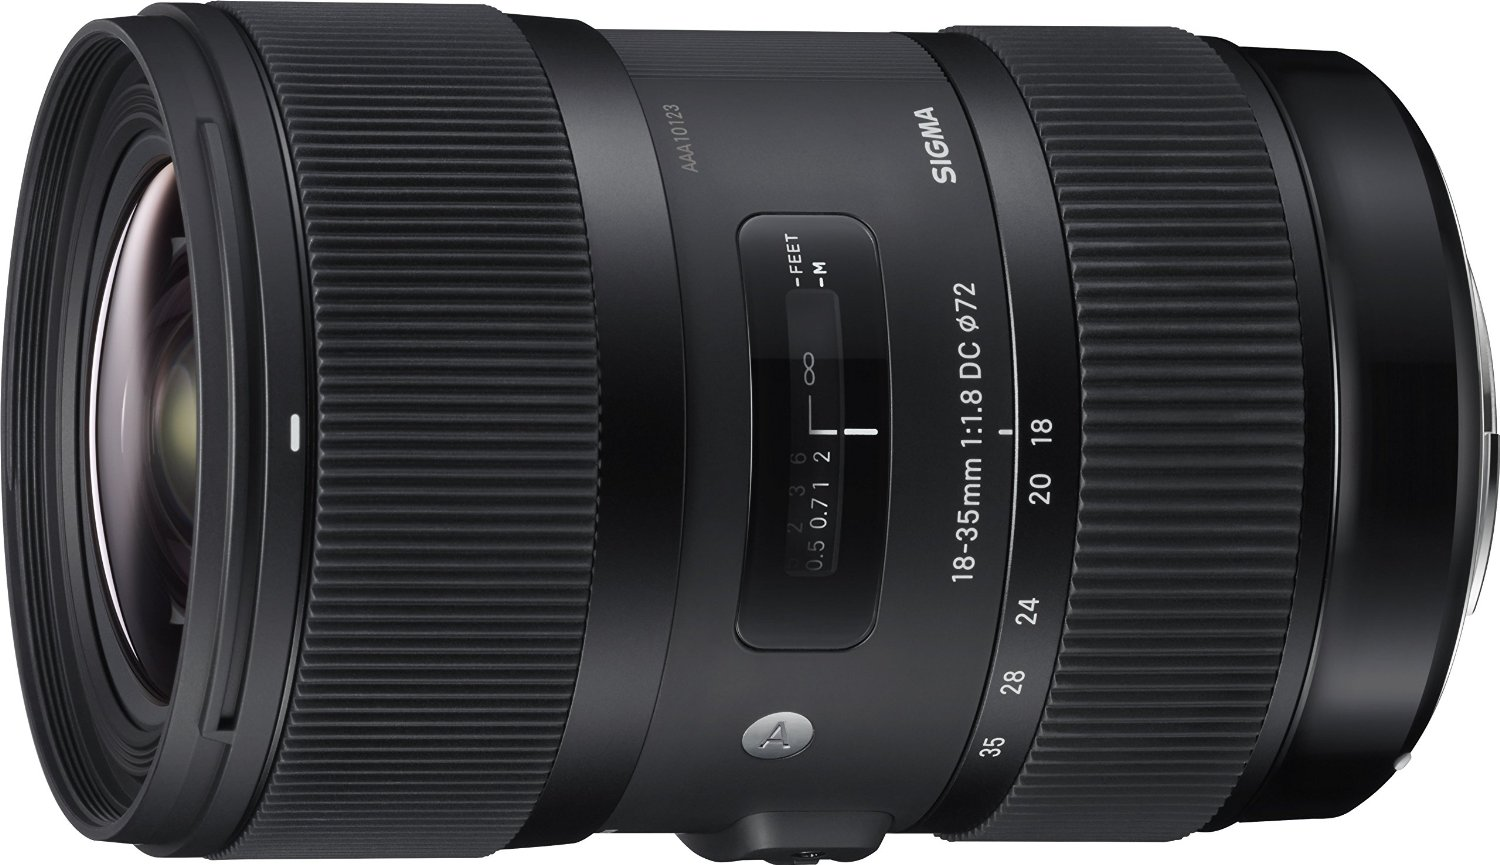 Image for Sigma Art - Wide-angle zoom lens - 18 mm - 35 mm - f/1.8 DC HSM - Sony A-type from Circuit City